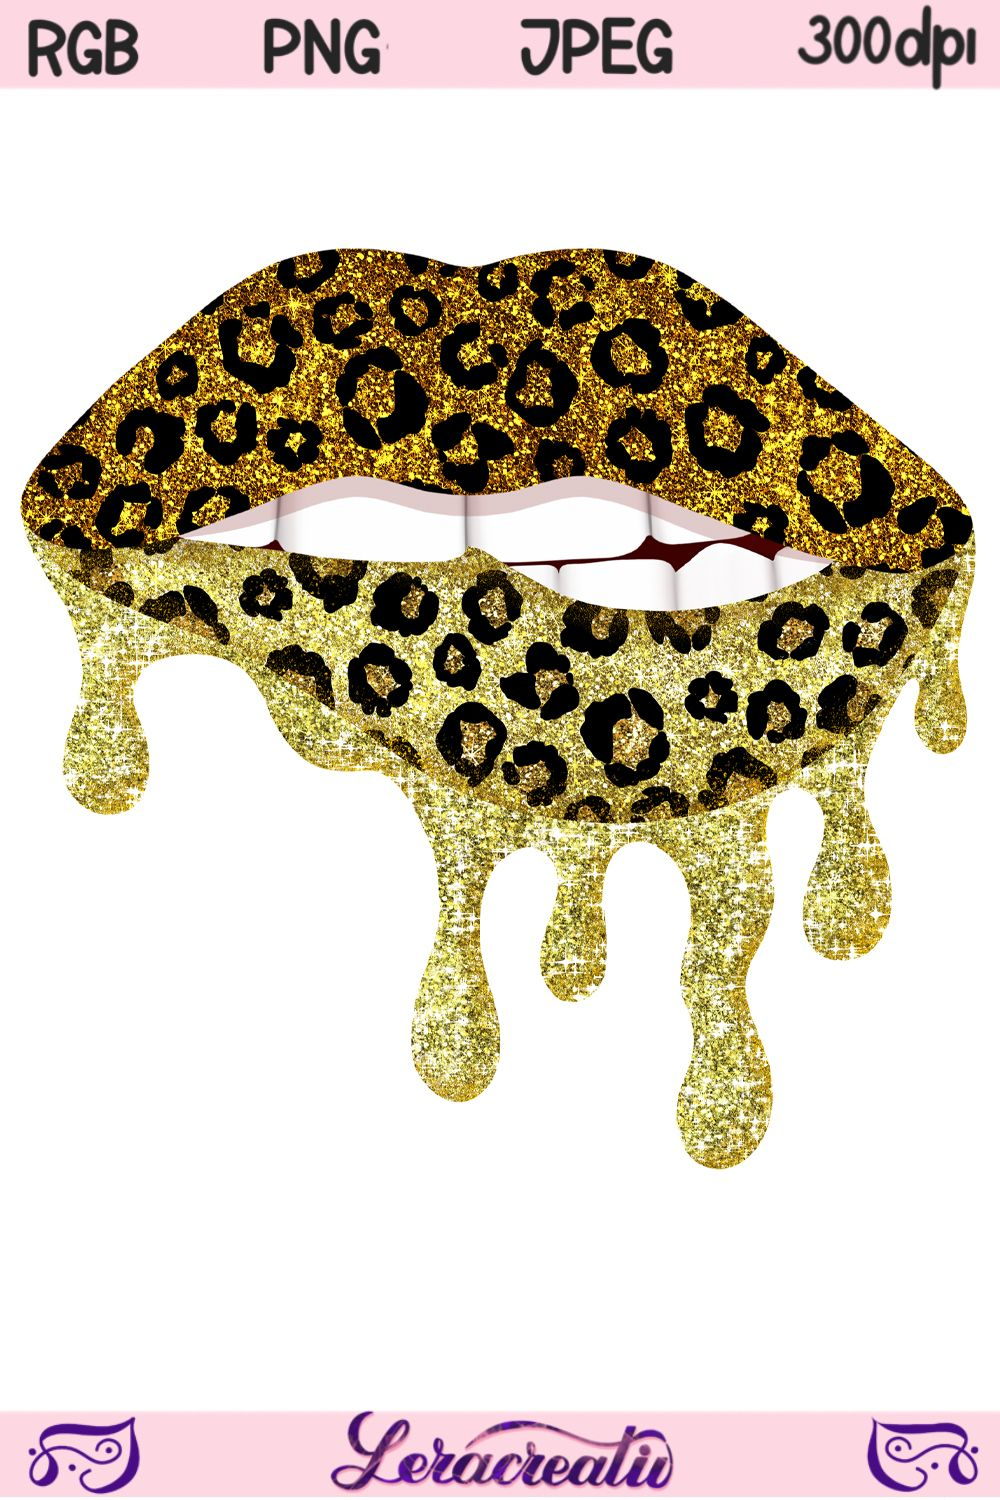 Dripping Lips Leopard Lips Png Valentines Day Png Etsy Black Aesthetic Wallpaper Luxury Brand Logo Colorful Glitter